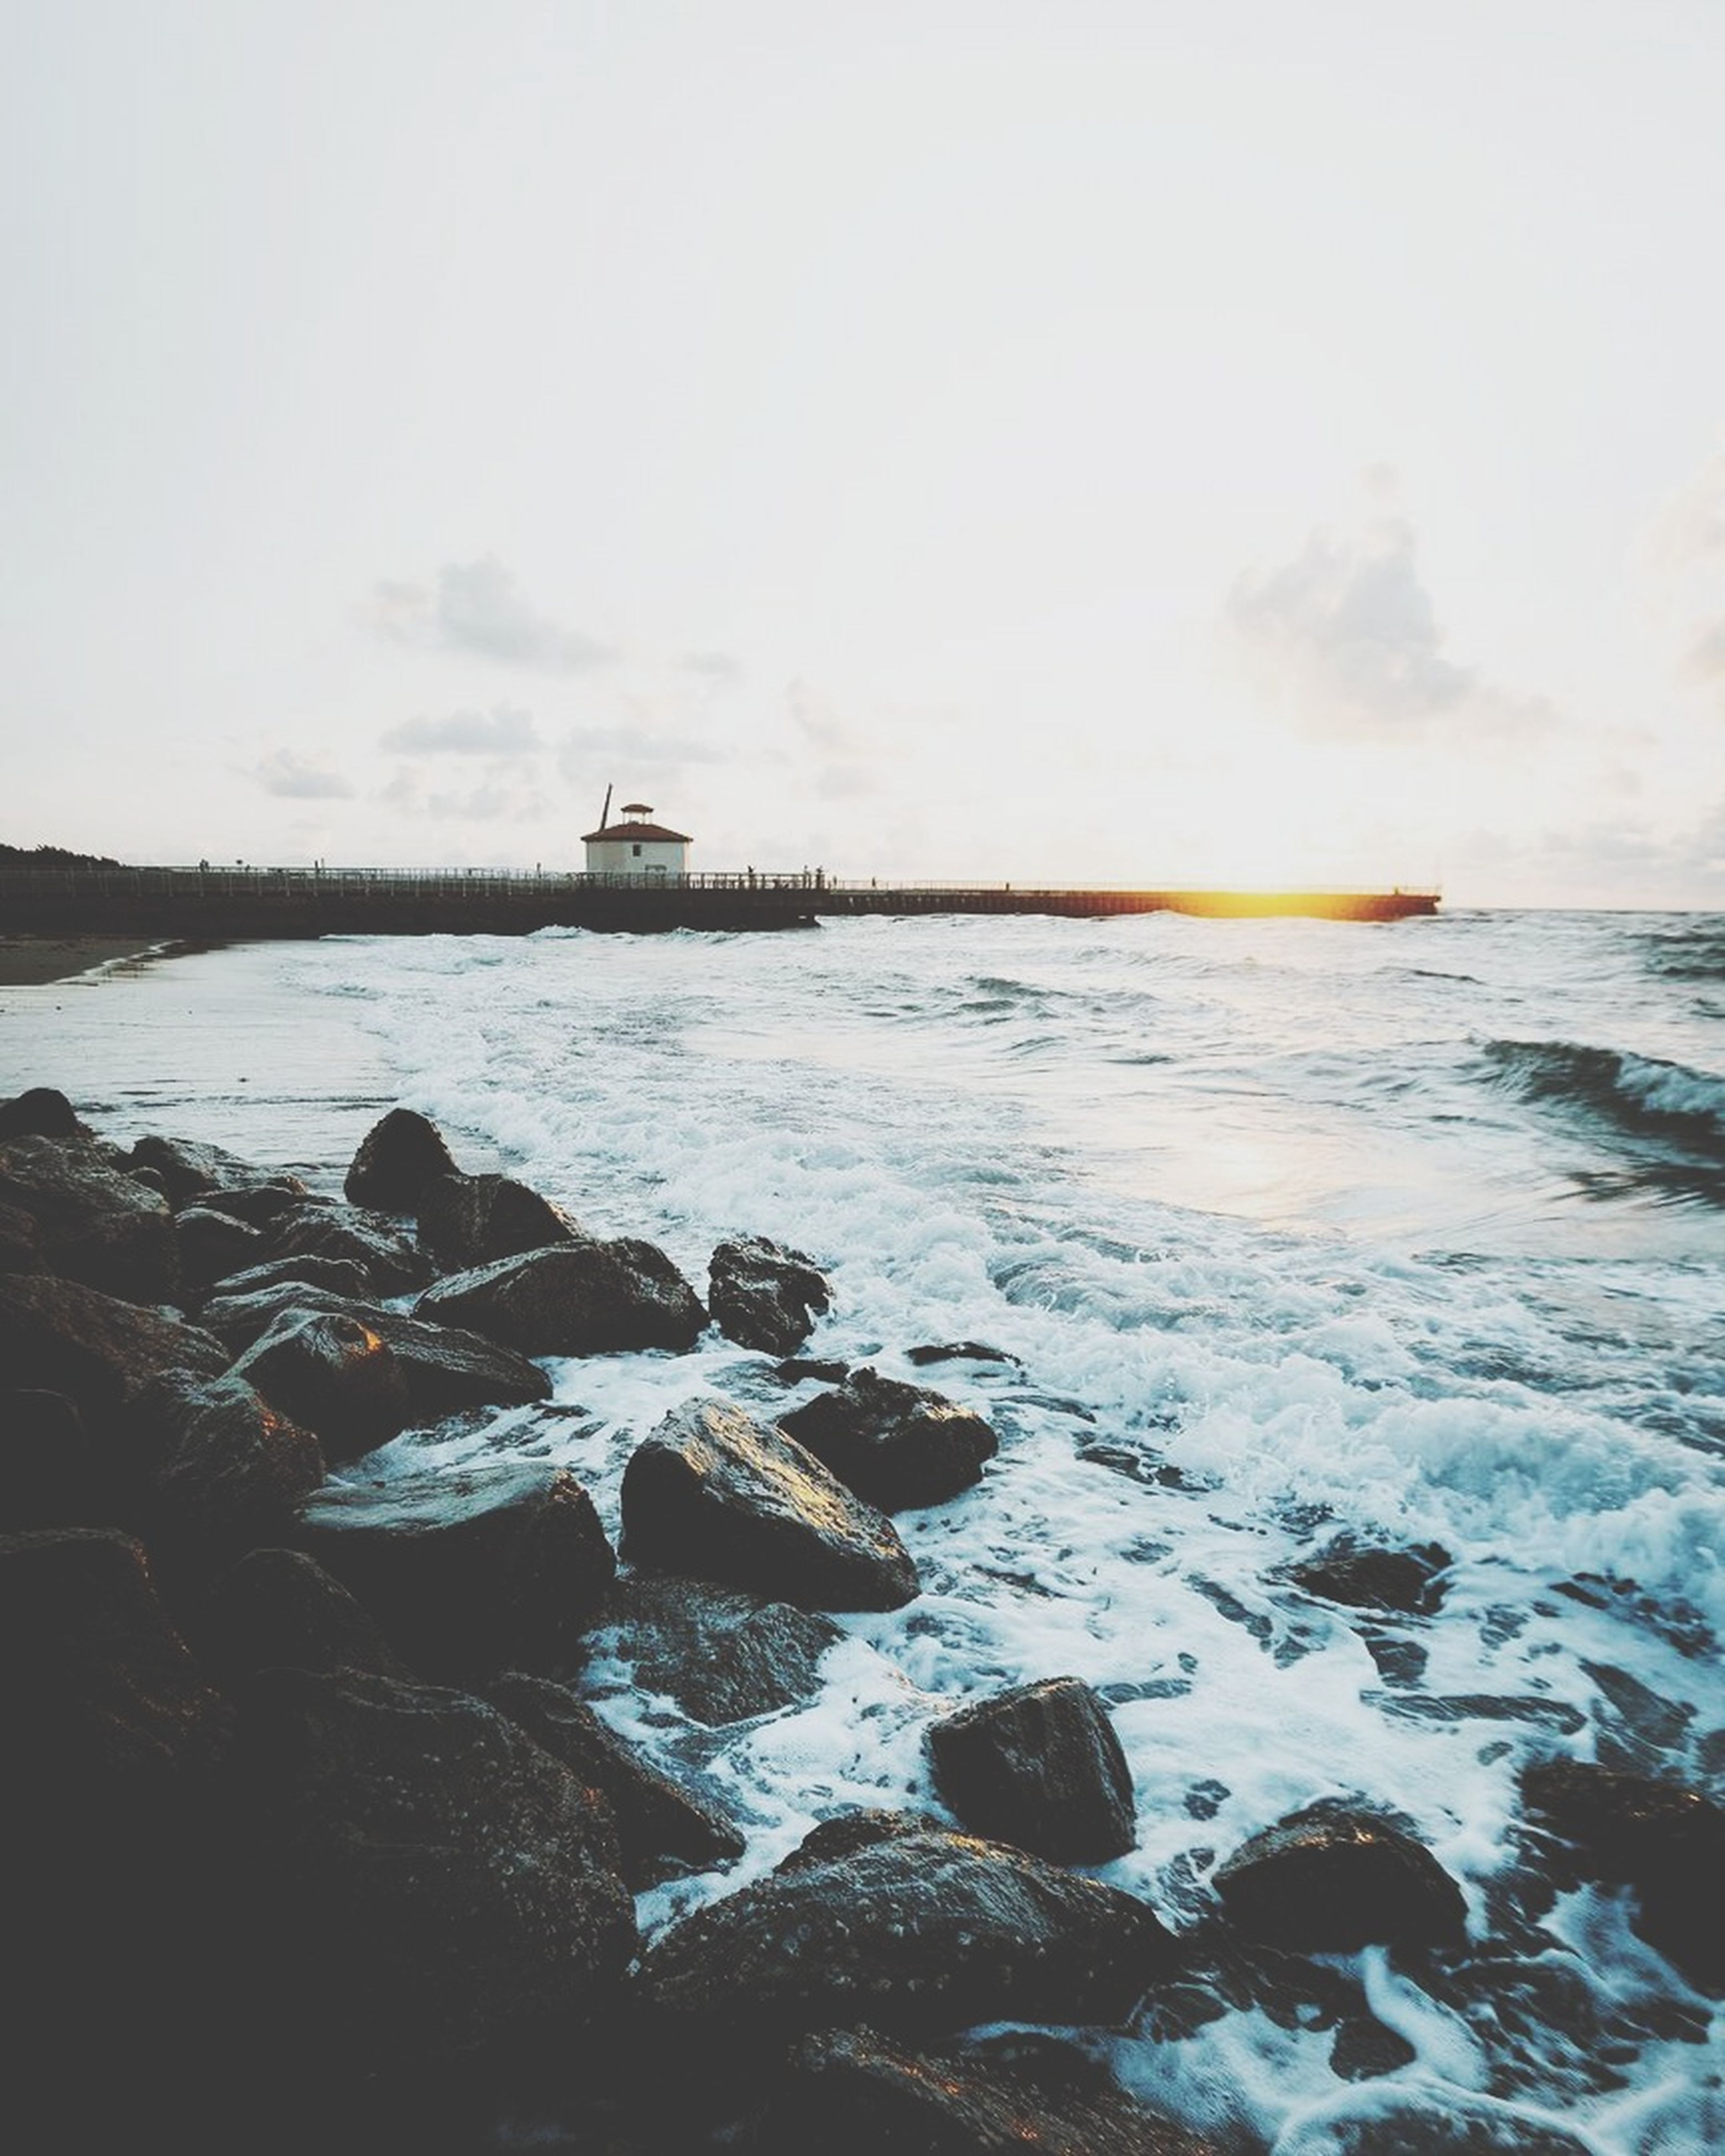 sea, water, rock - object, nature, outdoors, beauty in nature, no people, sky, scenics, day, nautical vessel, wave, horizon over water